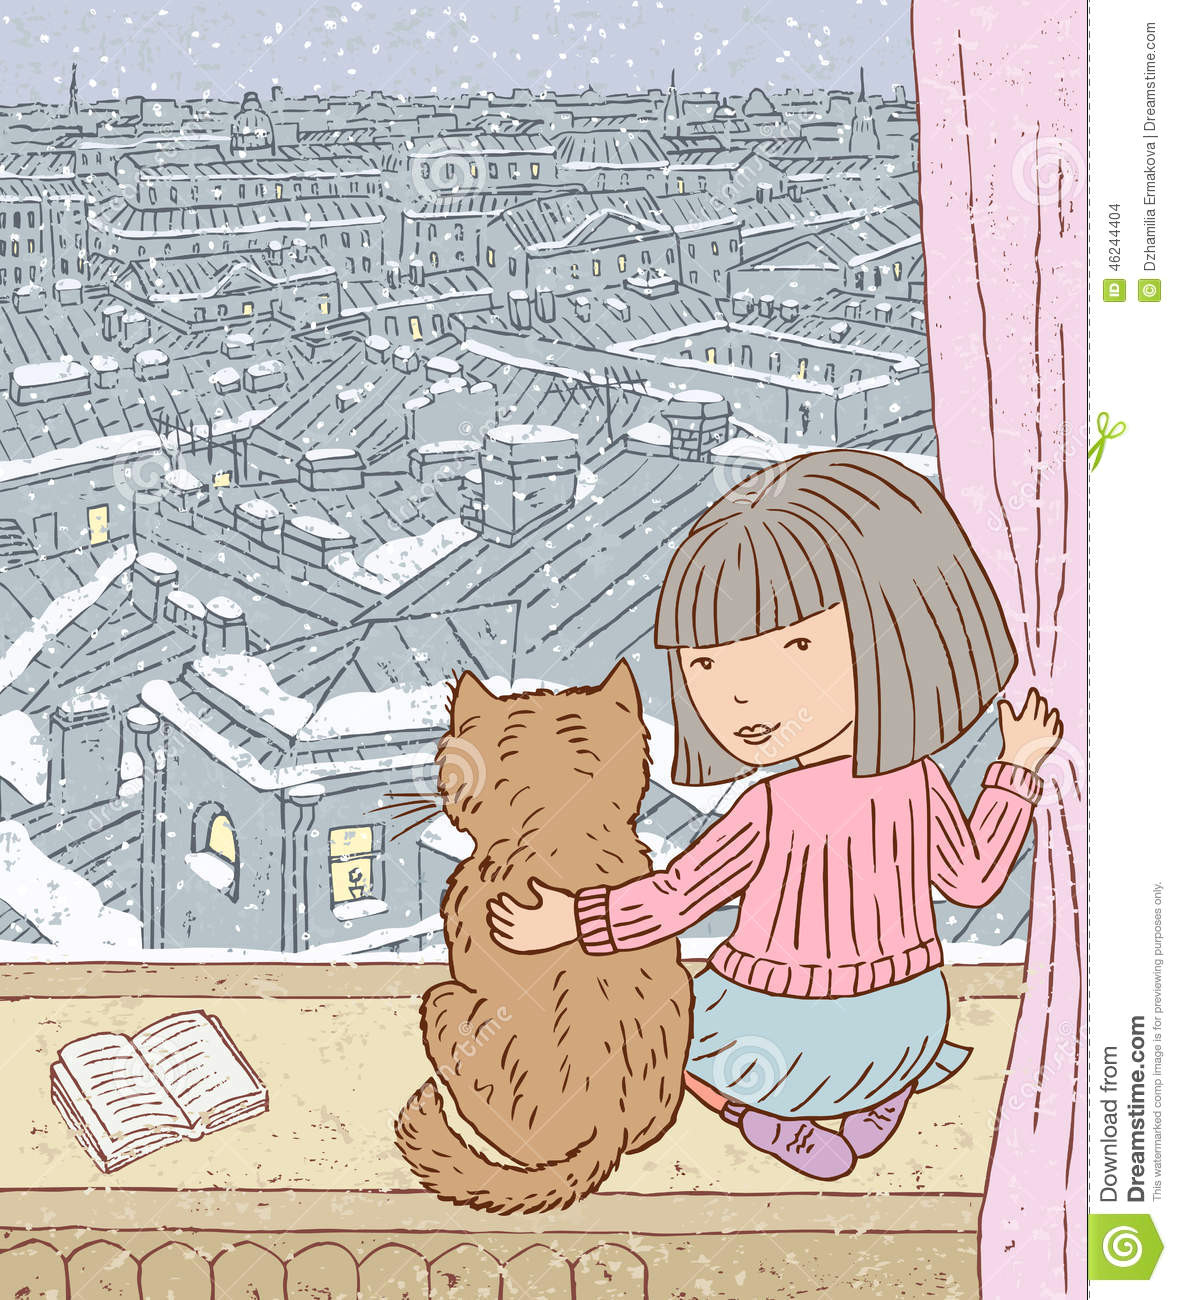 vector drawing of a little girl with a cat looking out the window in a winter city